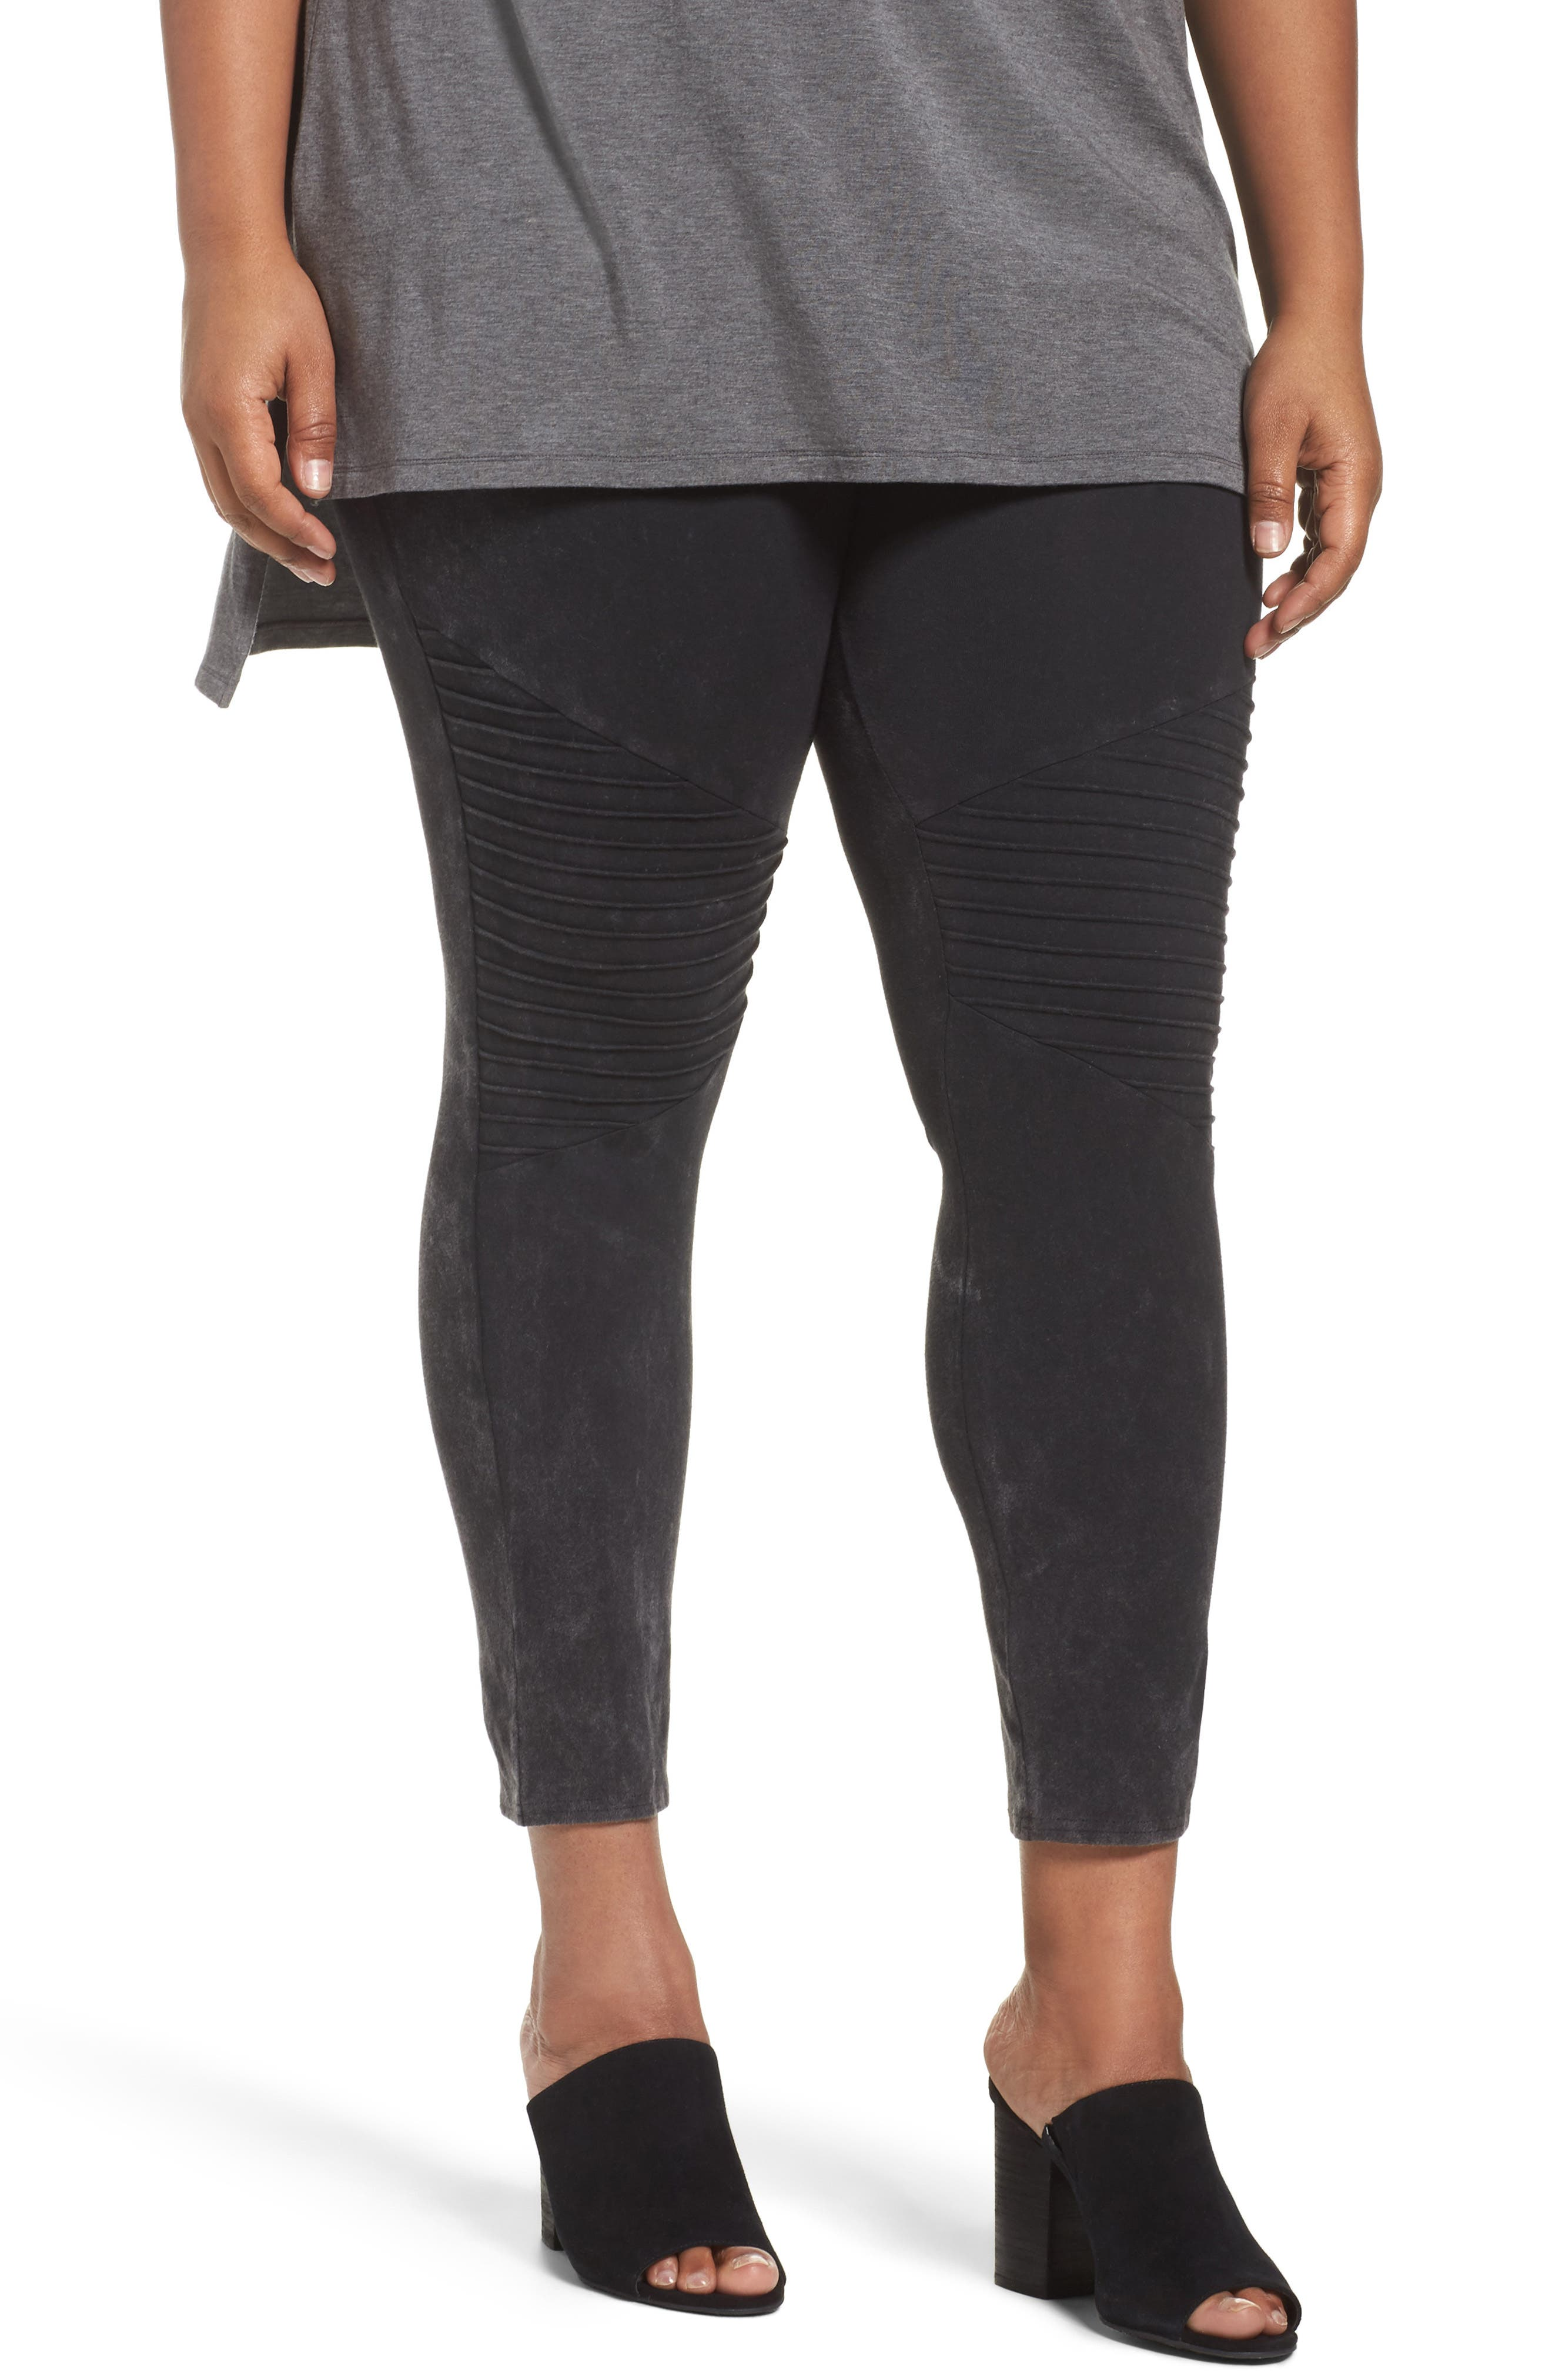 Nordstrom Moto Washed Cotton Blend Leggings (Plus Size)